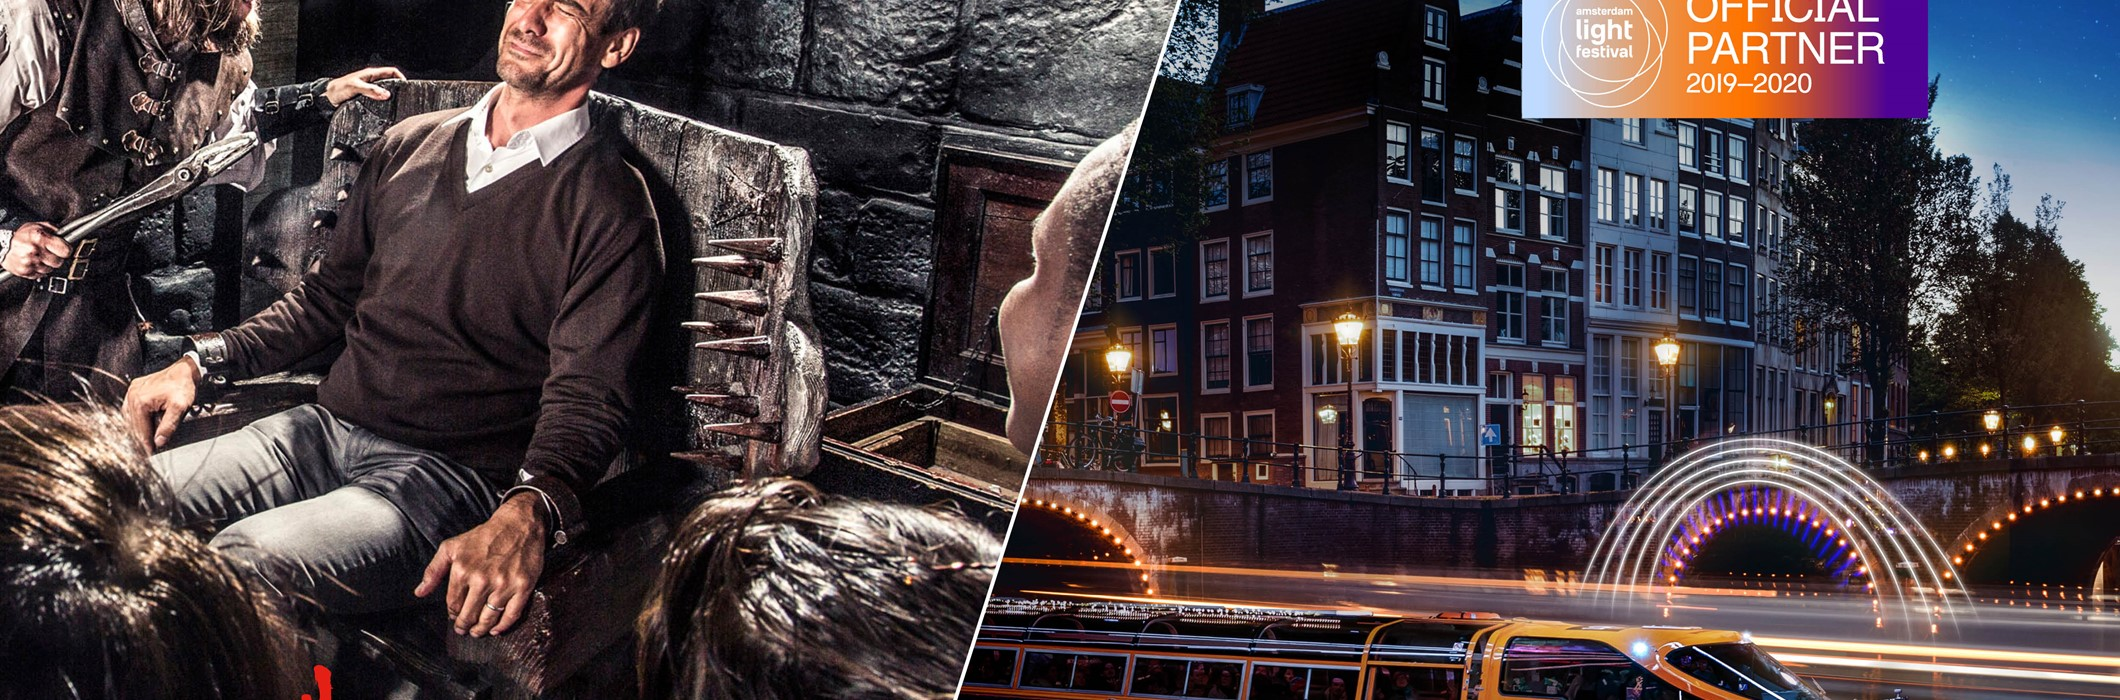 Amsterdam Dungeon + Amsterdam Light Festival Cruise